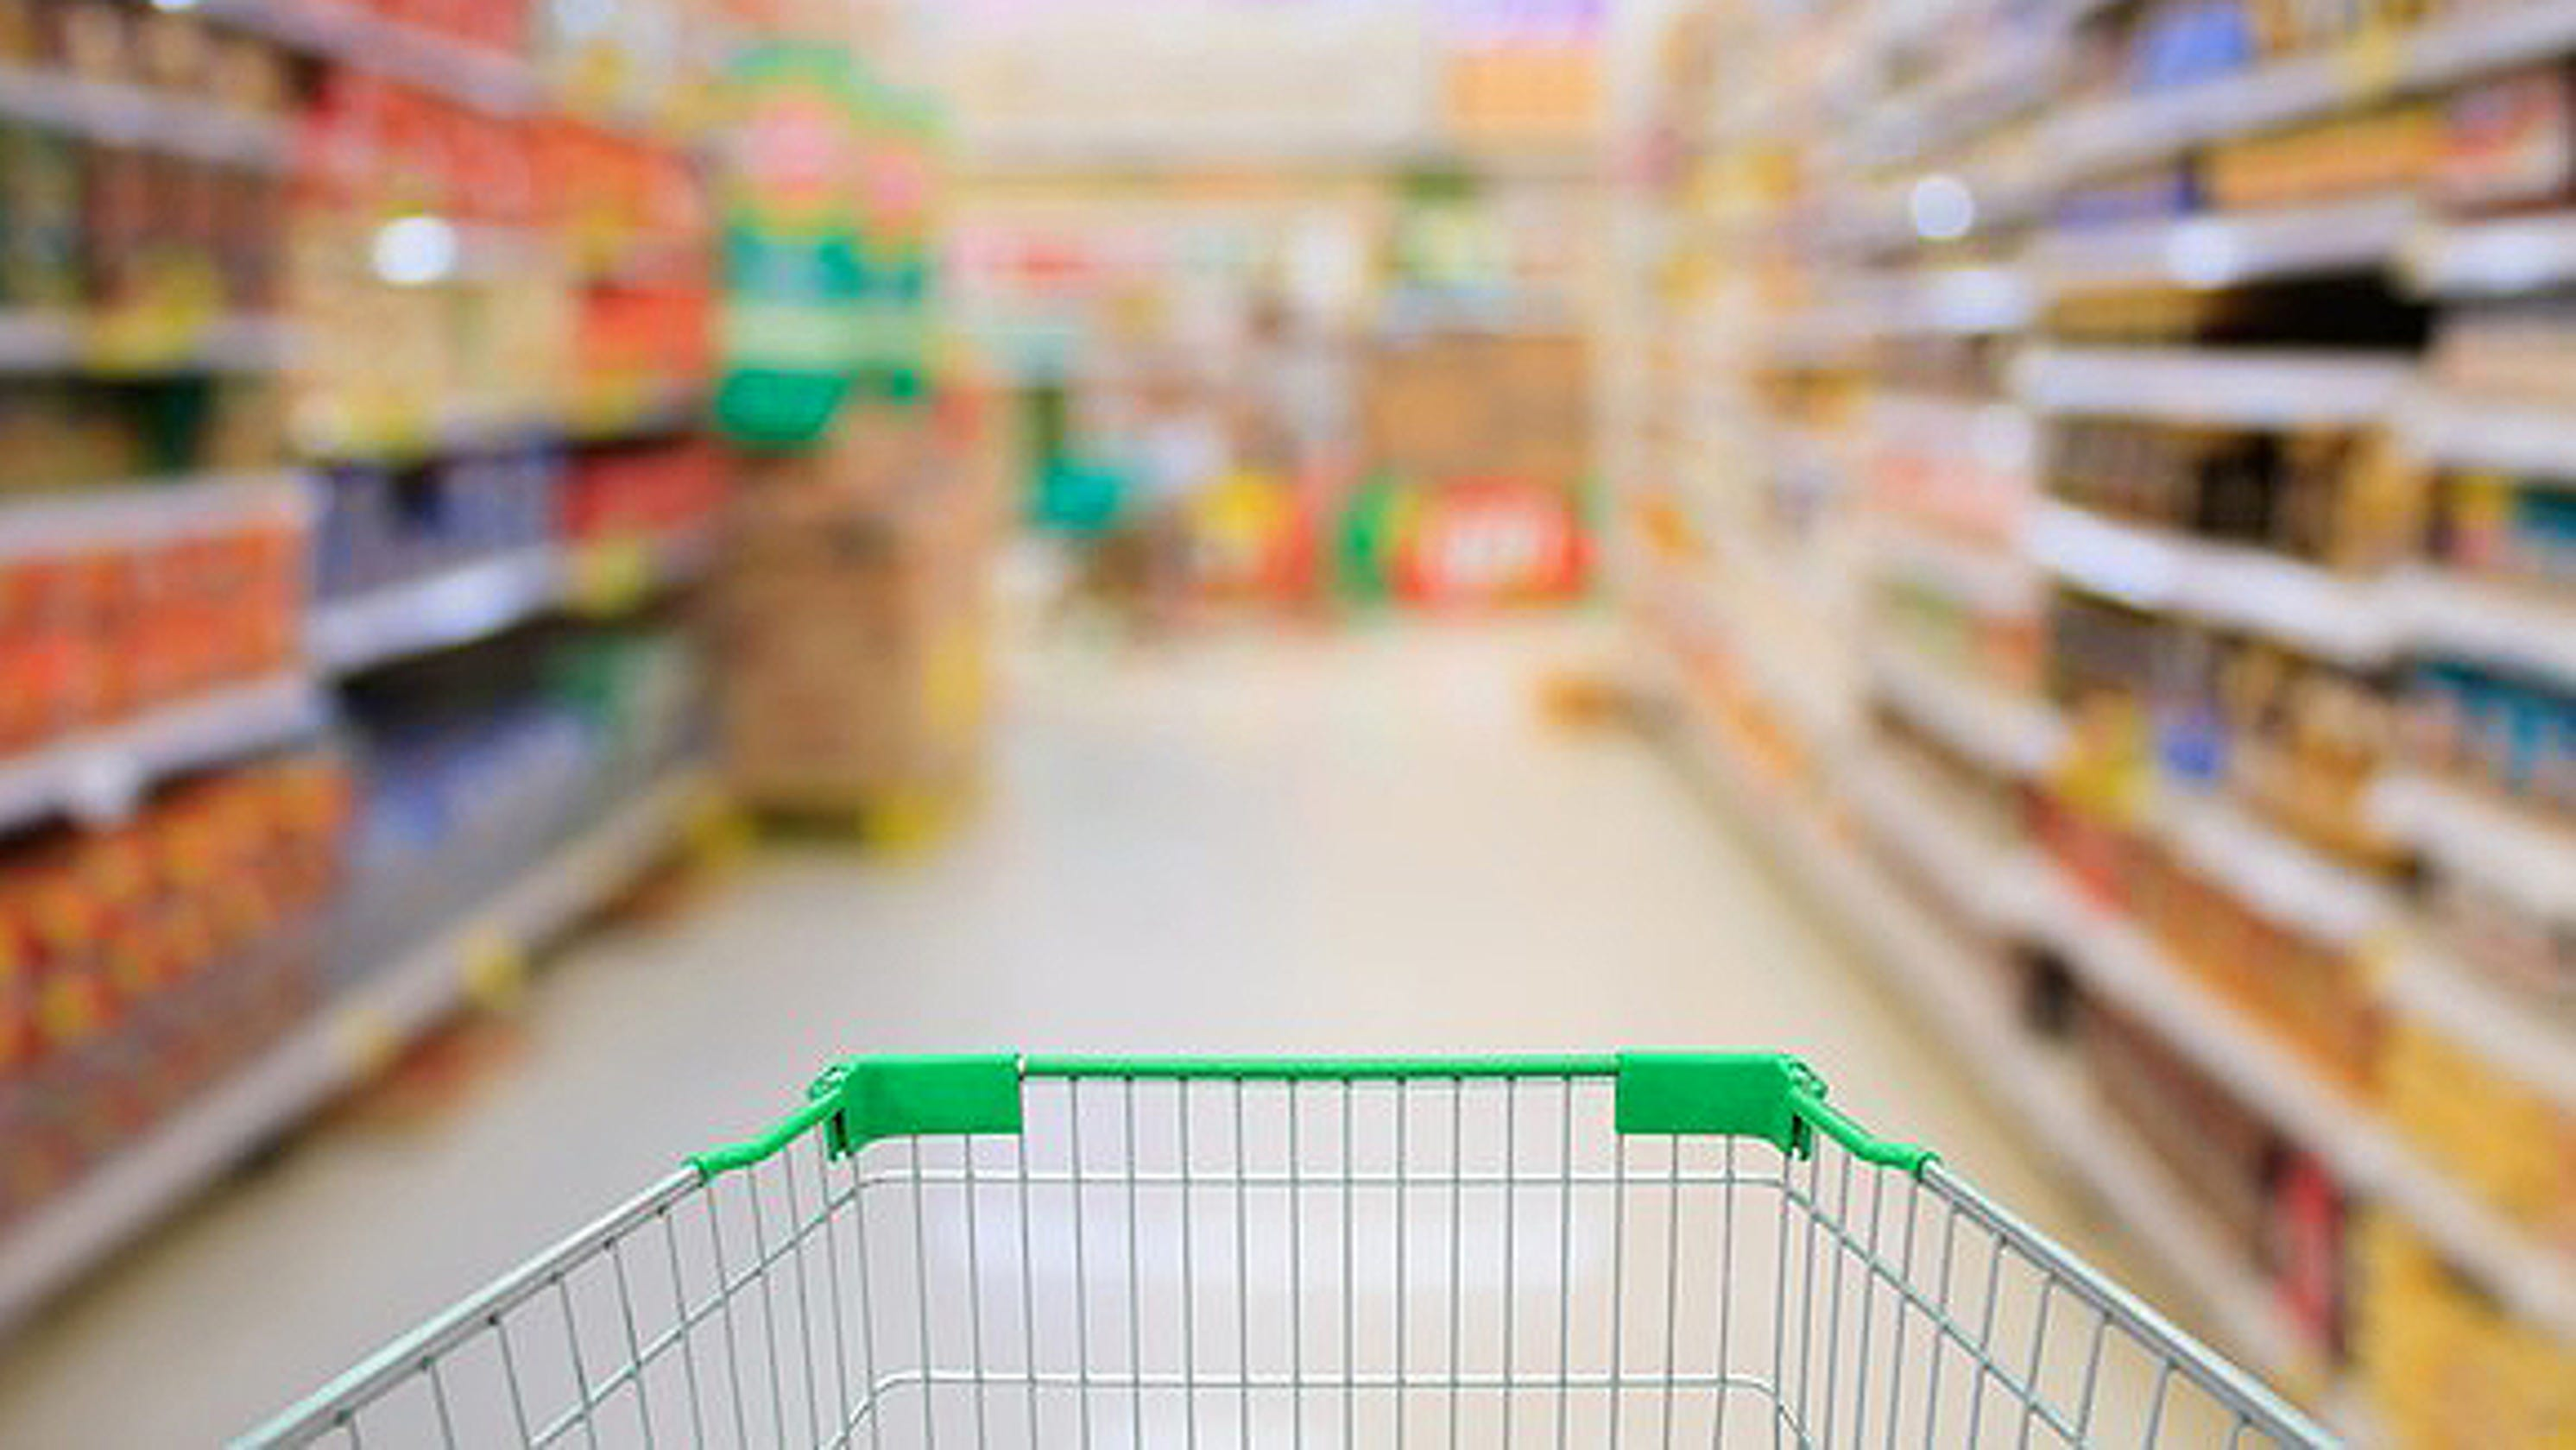 Instacart grocery delivery service launching in Central Delaware